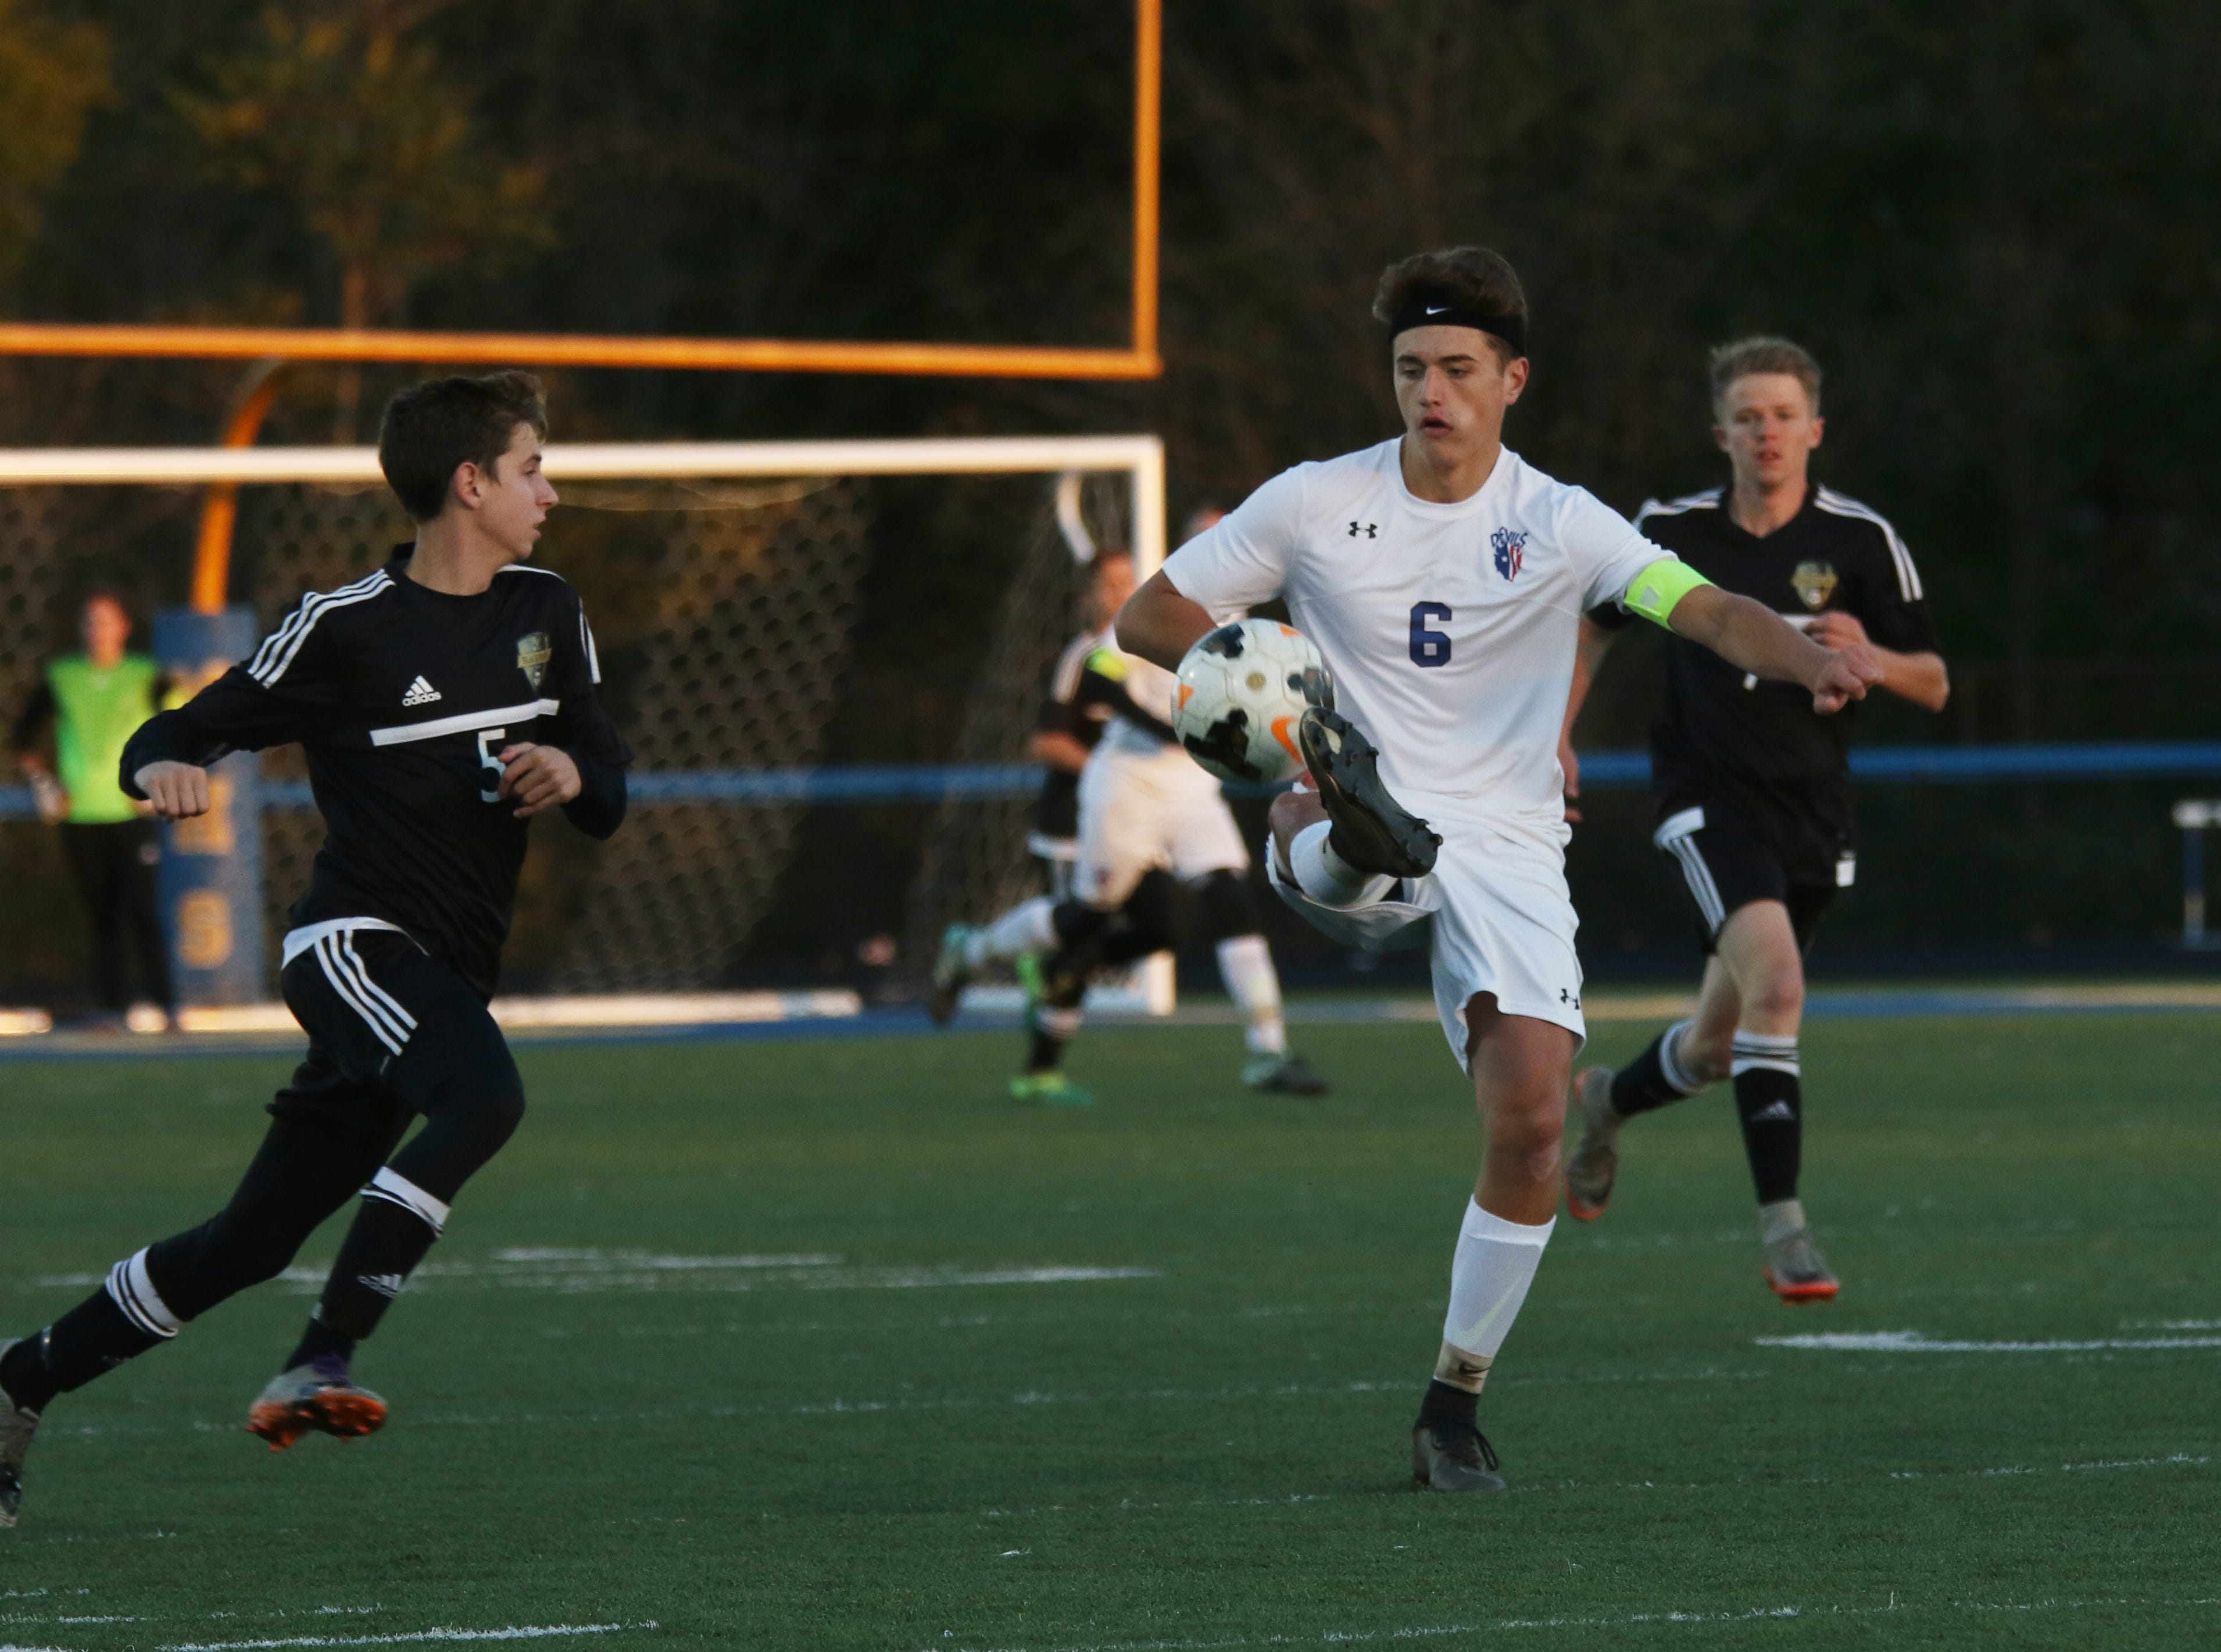 River View knocked Zanesville out of the tournament with a 2-0 win over the Blue Devils Wednesday night at Maysville High School.